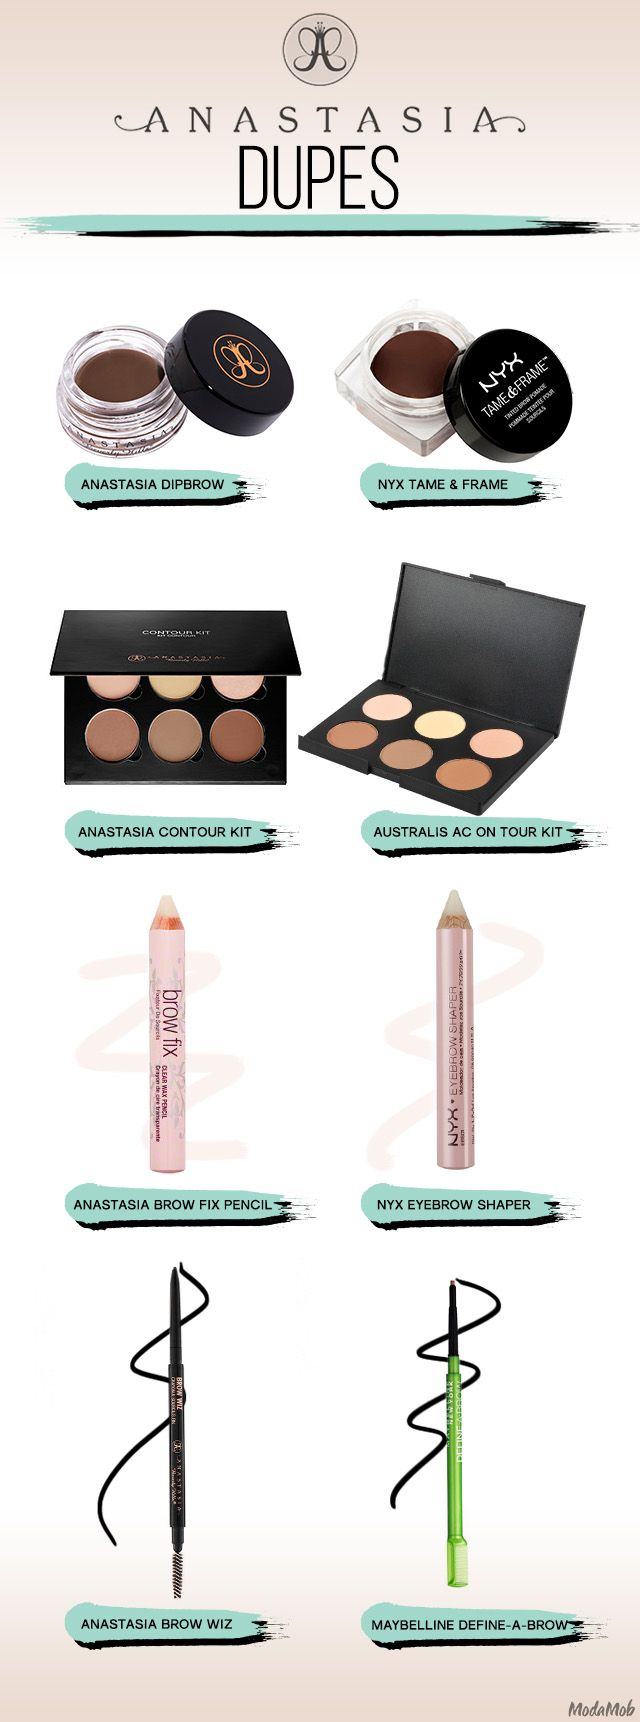 We Found the Best Drugstore Dupes for Anastasia Beverly Hills | Modamob